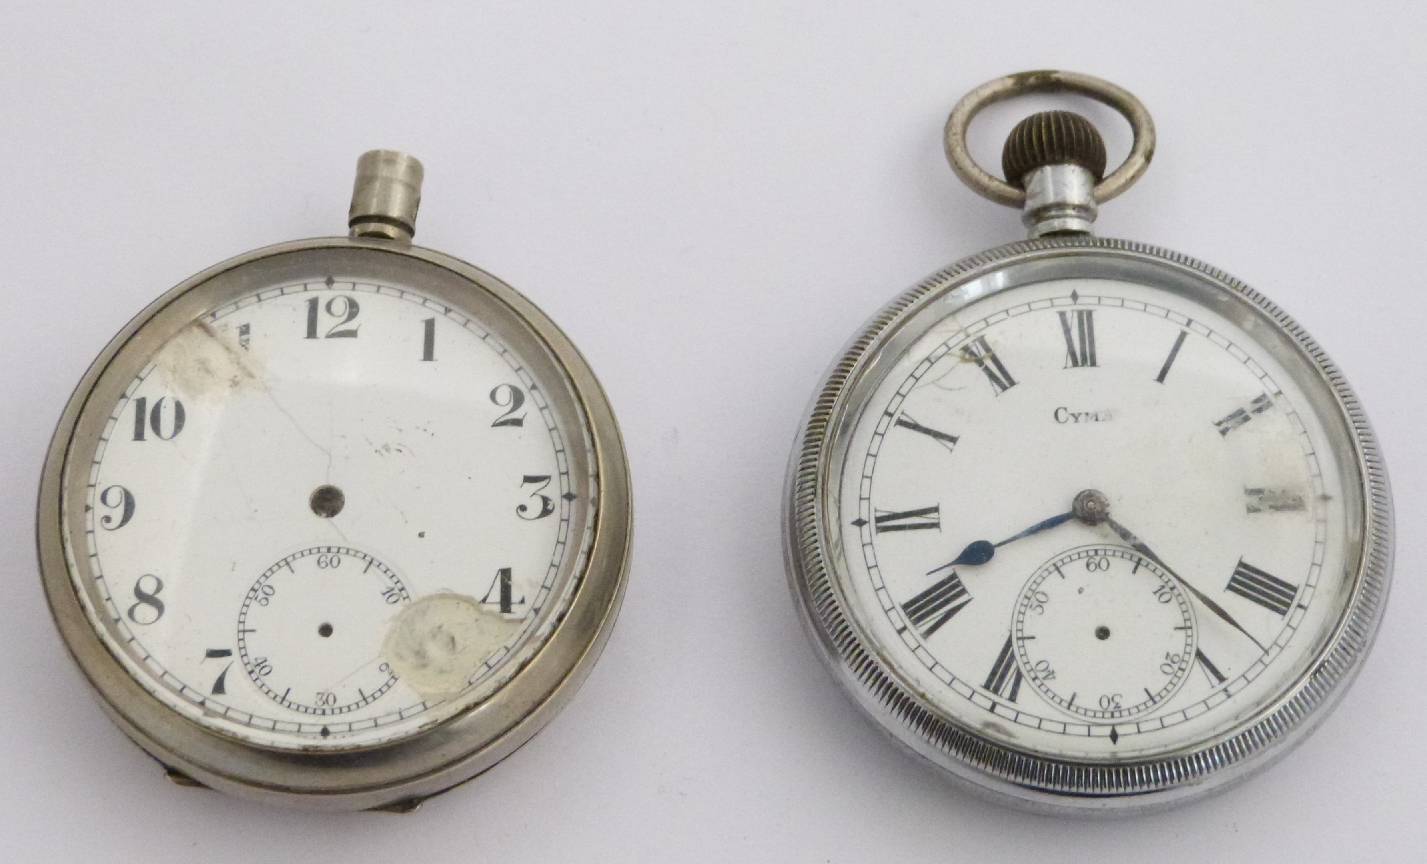 Lot 57 - Two British Railways keyless winding open face pocket watches, one a Cyma Southern region the